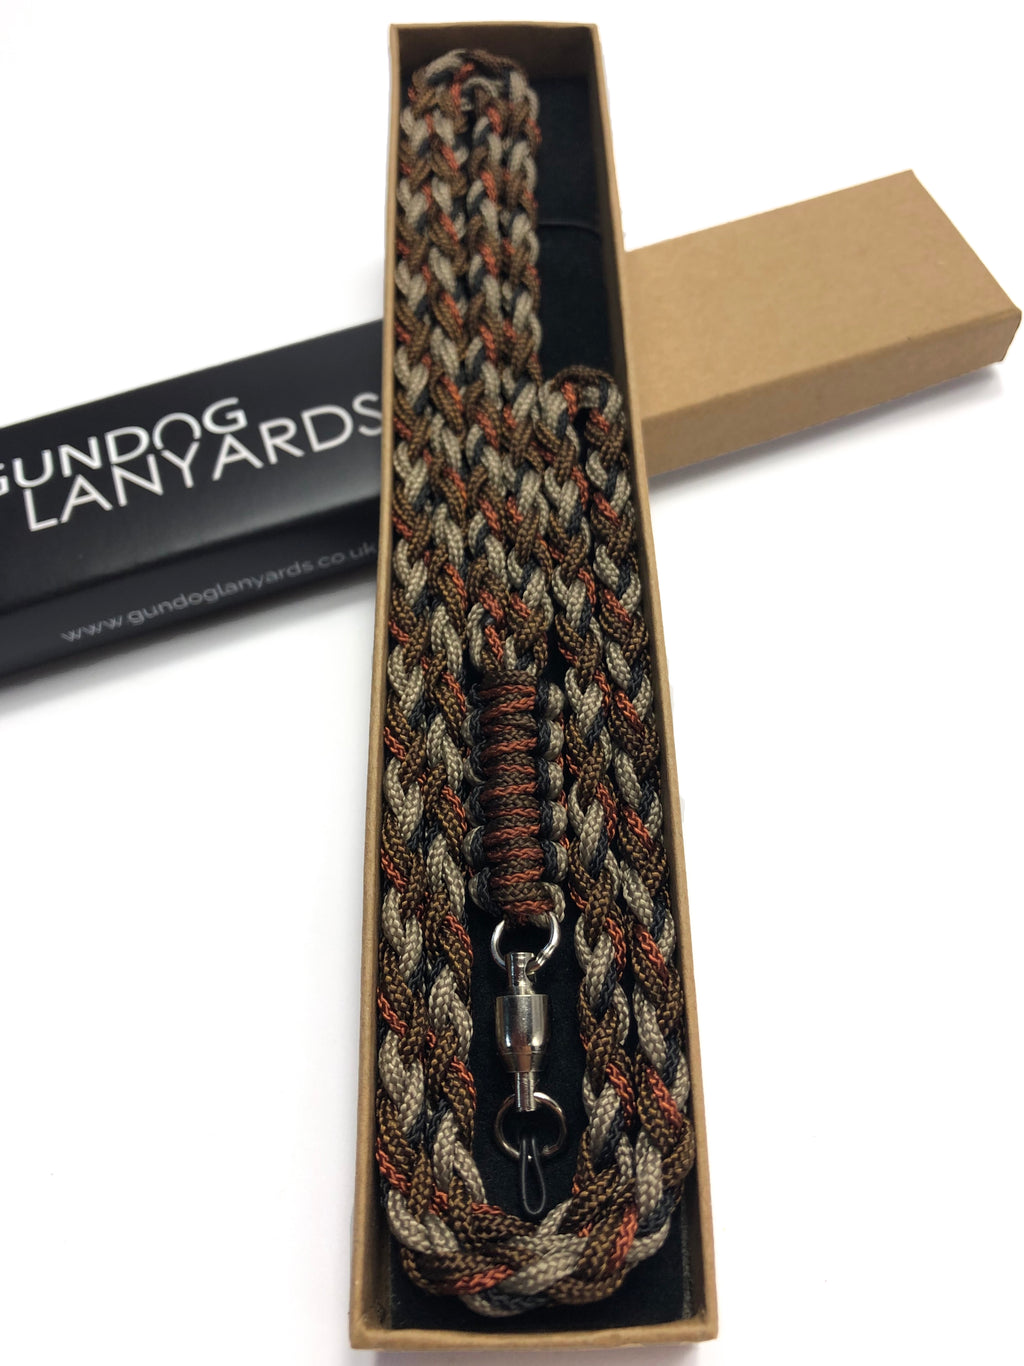 Special Edition Lanyard - The Woodcock